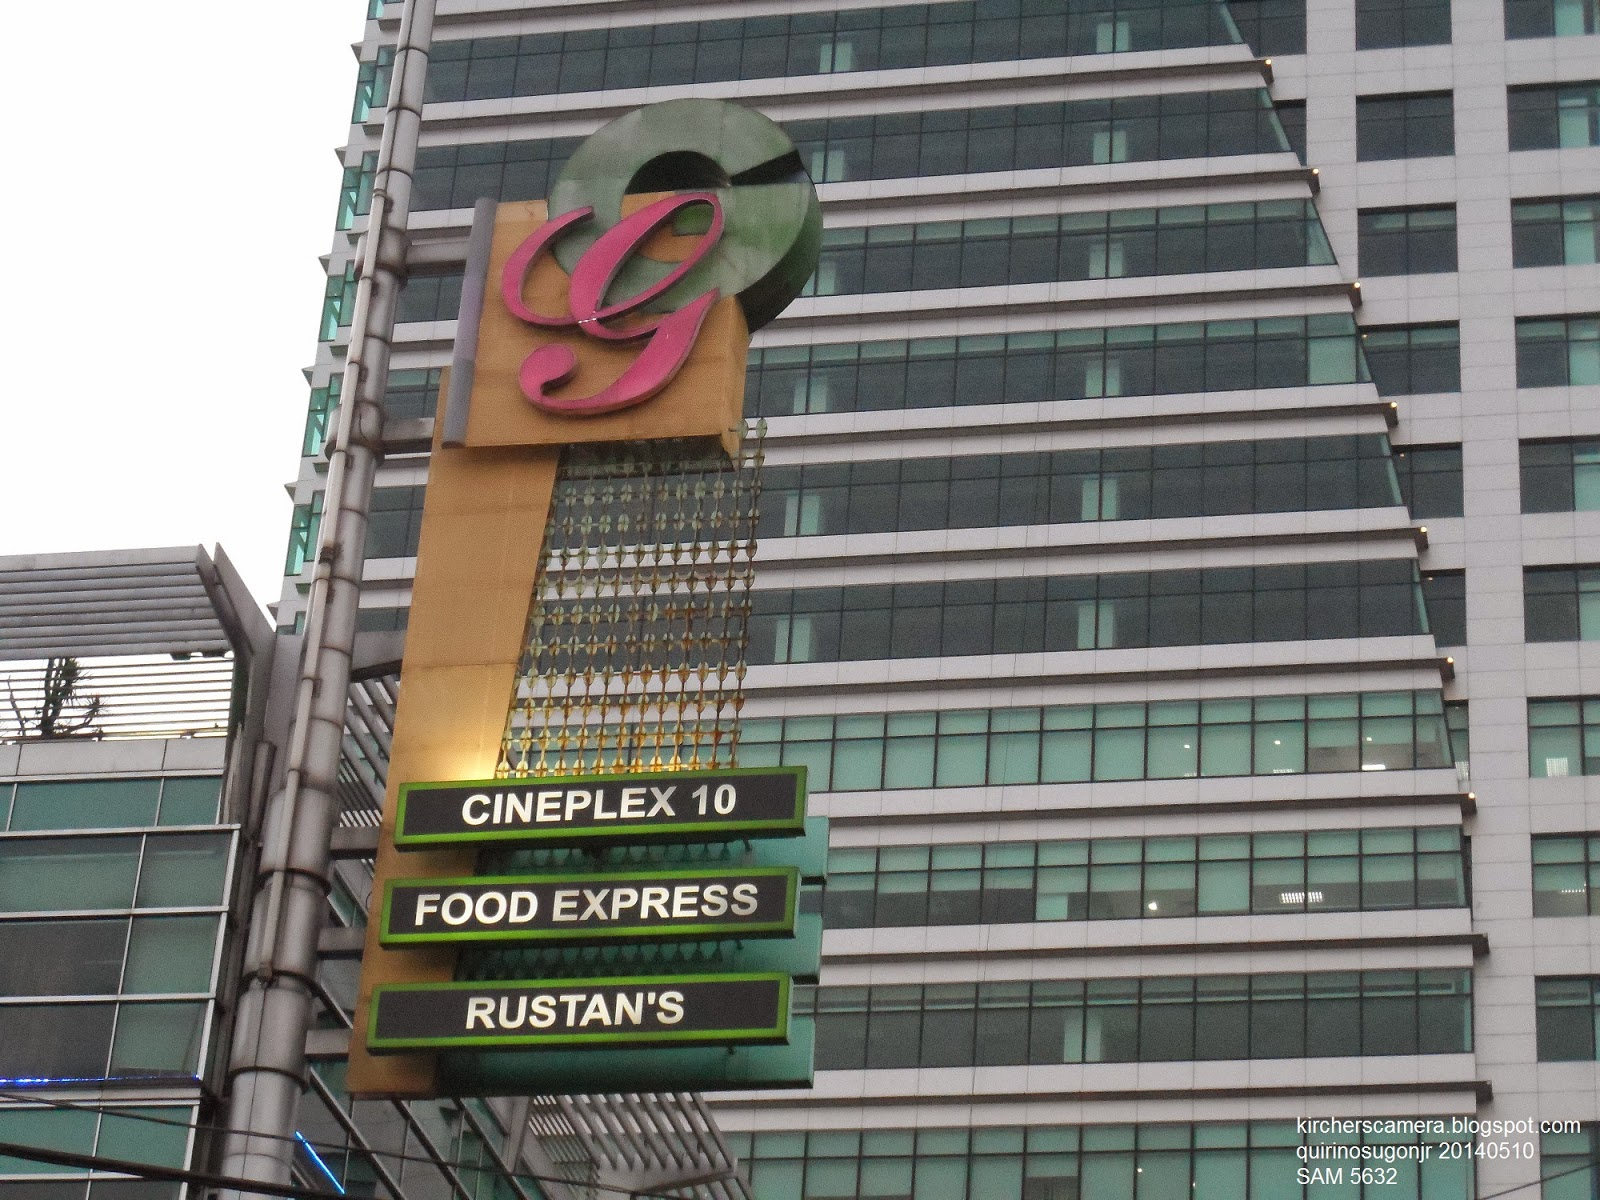 Gateway Mall's G logo. The logo consists of a script G in pink and a sans  serif G in green with a yellow background. Below the logo are the following  signs: Cineplex 10, Food Express, and Rustans